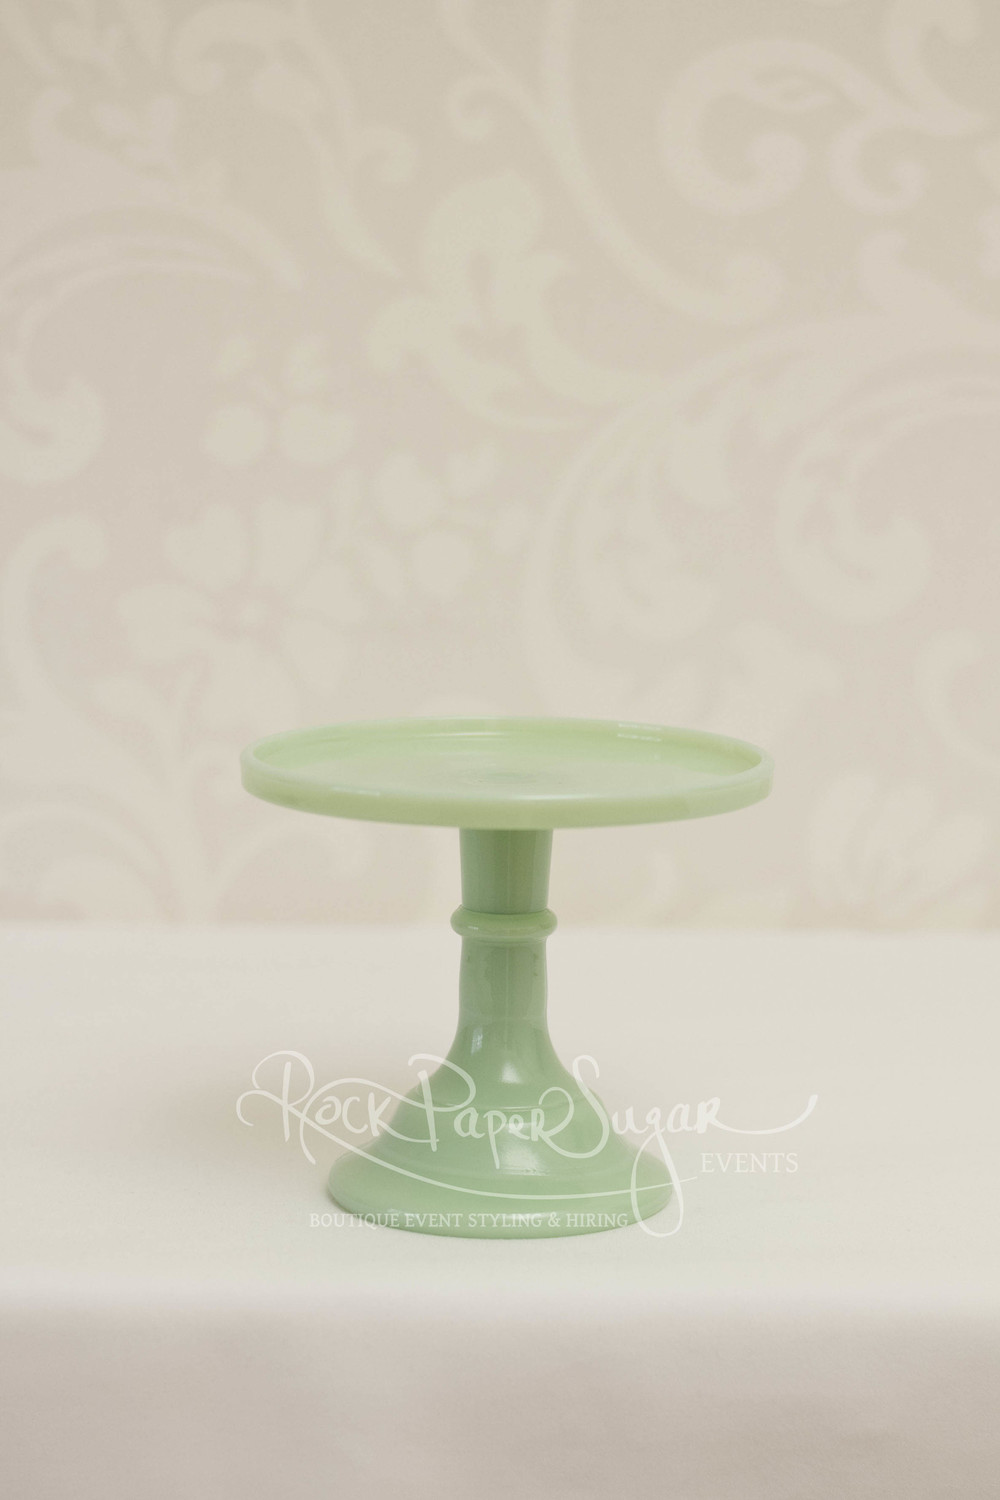 Rock Paper Sugar Events Cake Stands 007.jpg